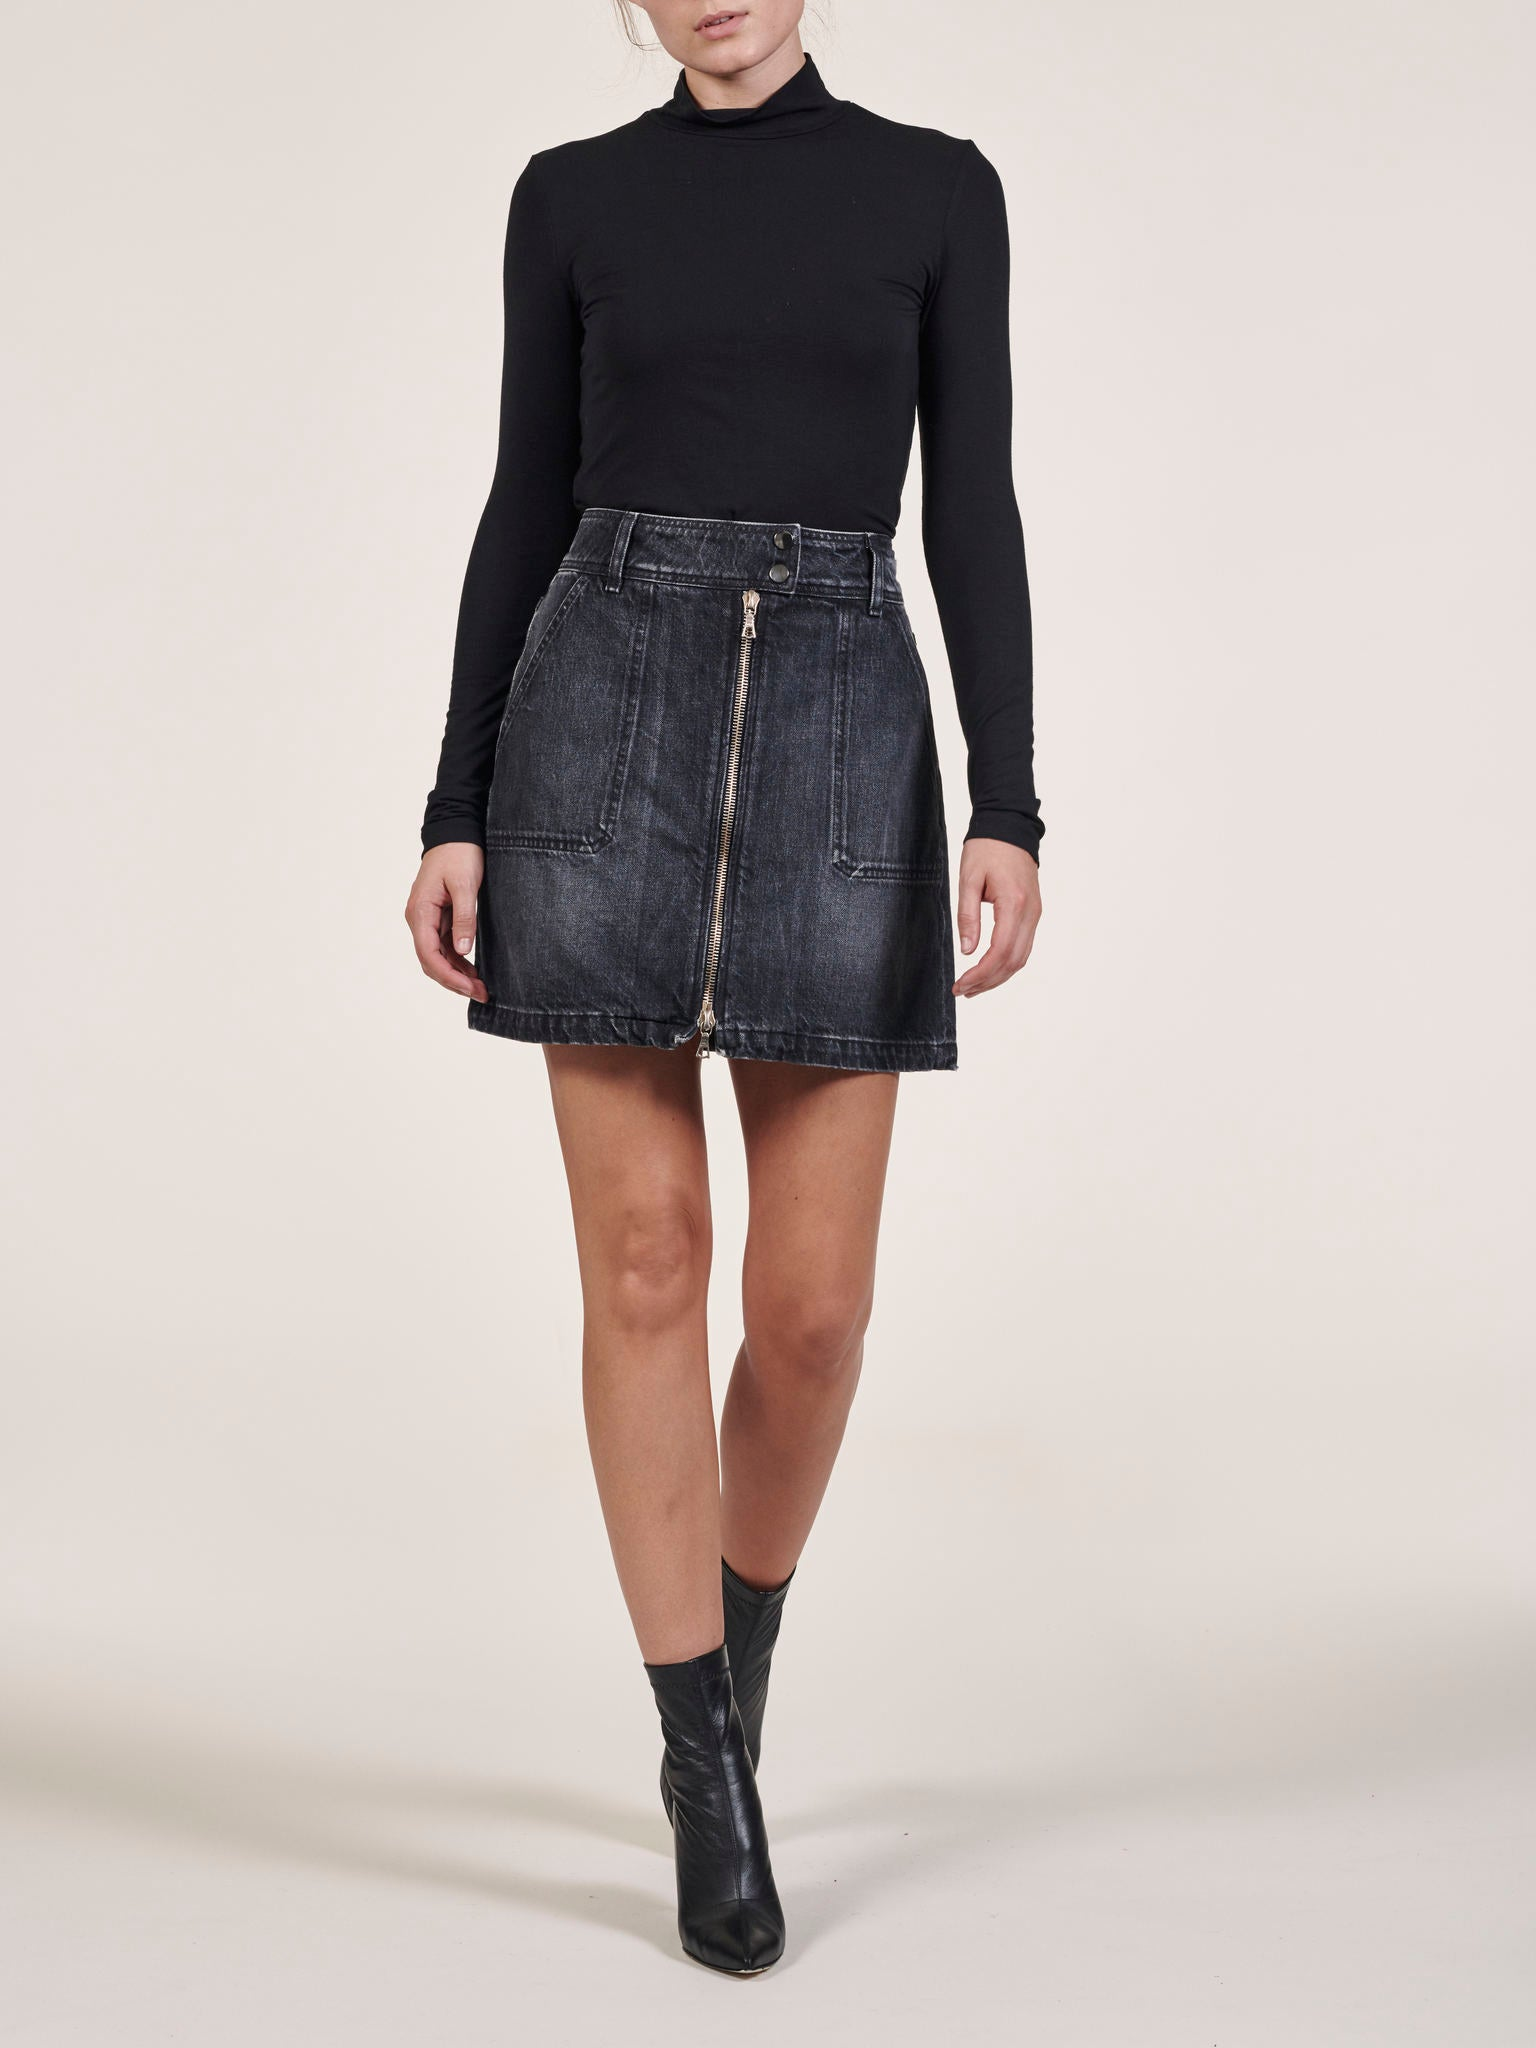 Zip Front A-Line Black Denim Skirt